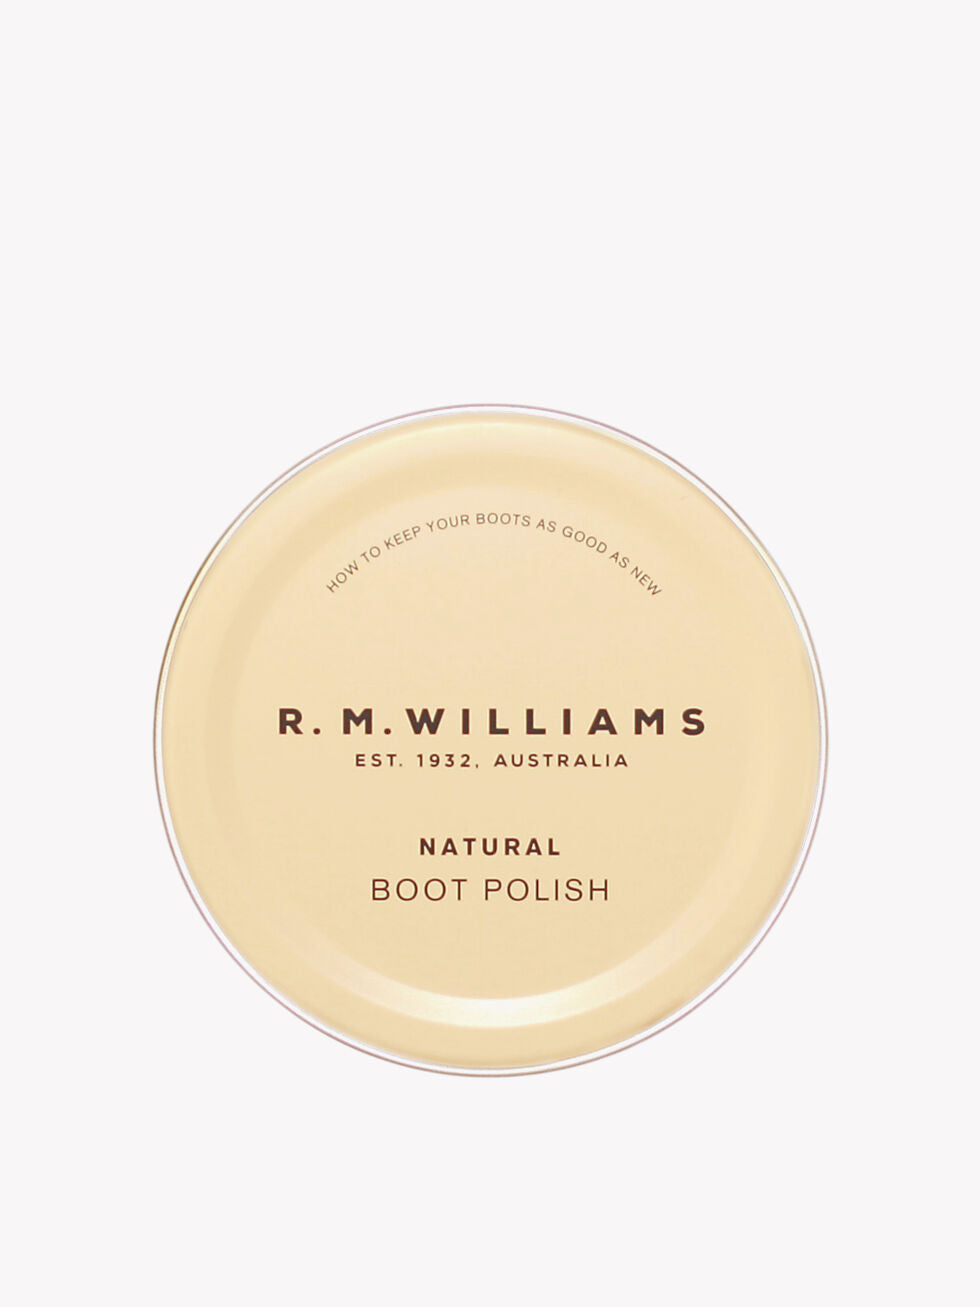 R.M. Williams Stockman's Boot Polish - Natural